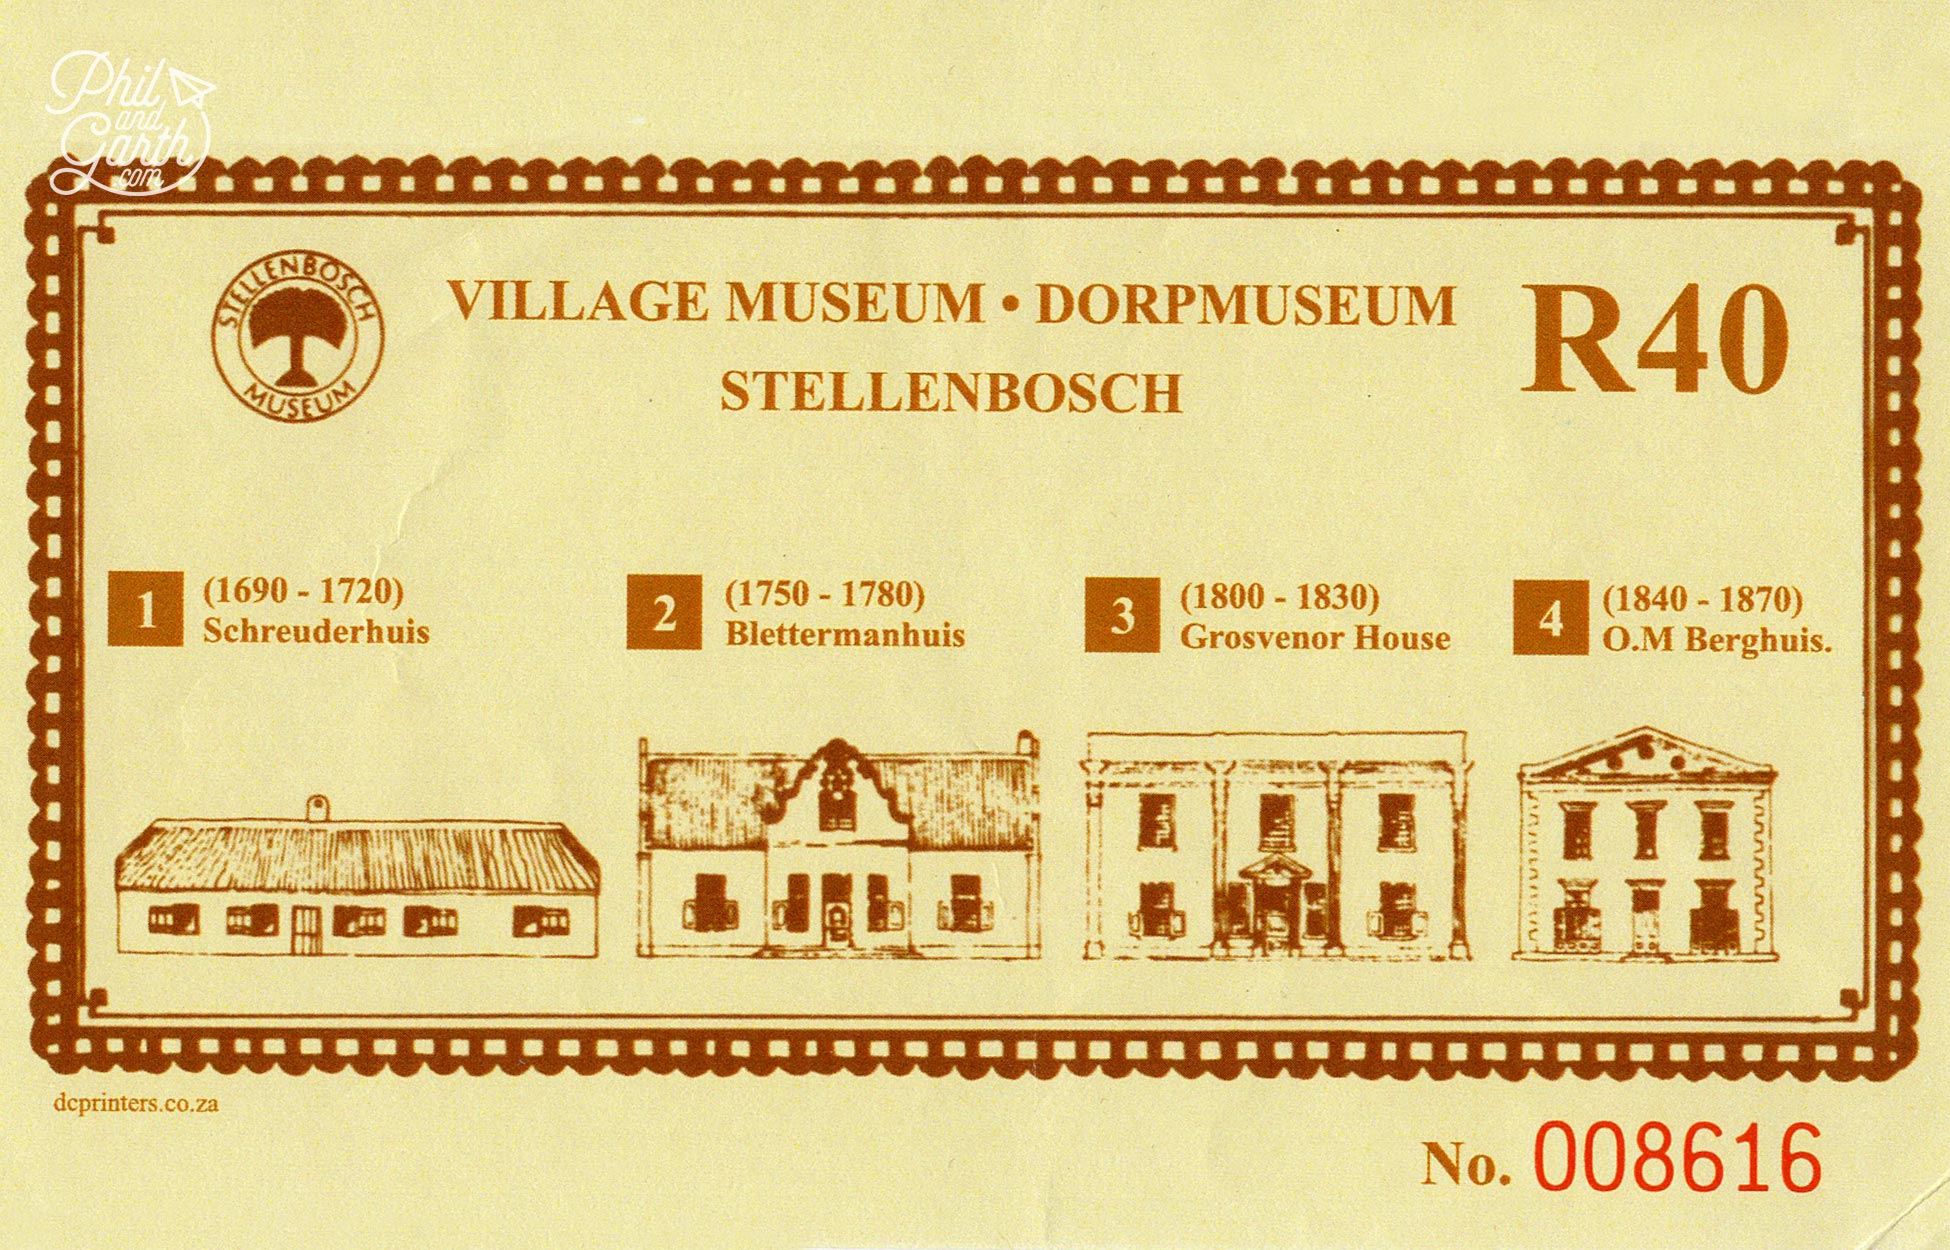 The ticket shows the exterior profile of house